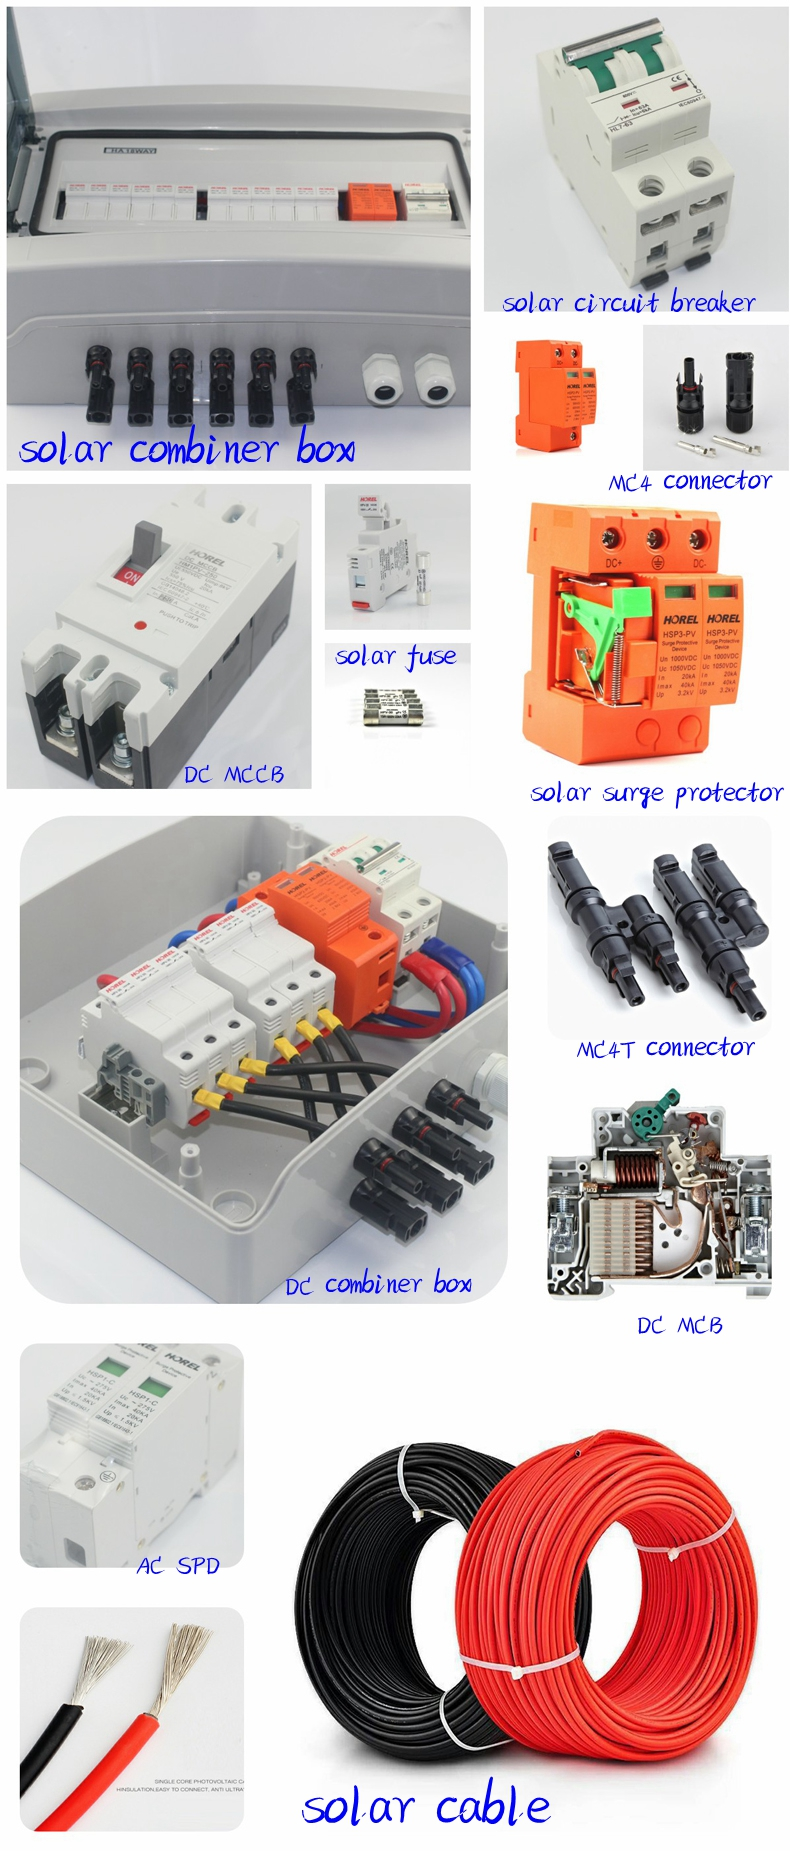 Hrpv 16 1 Input Output Strings Pv Solar Panel Combiner Box String Wiring Product